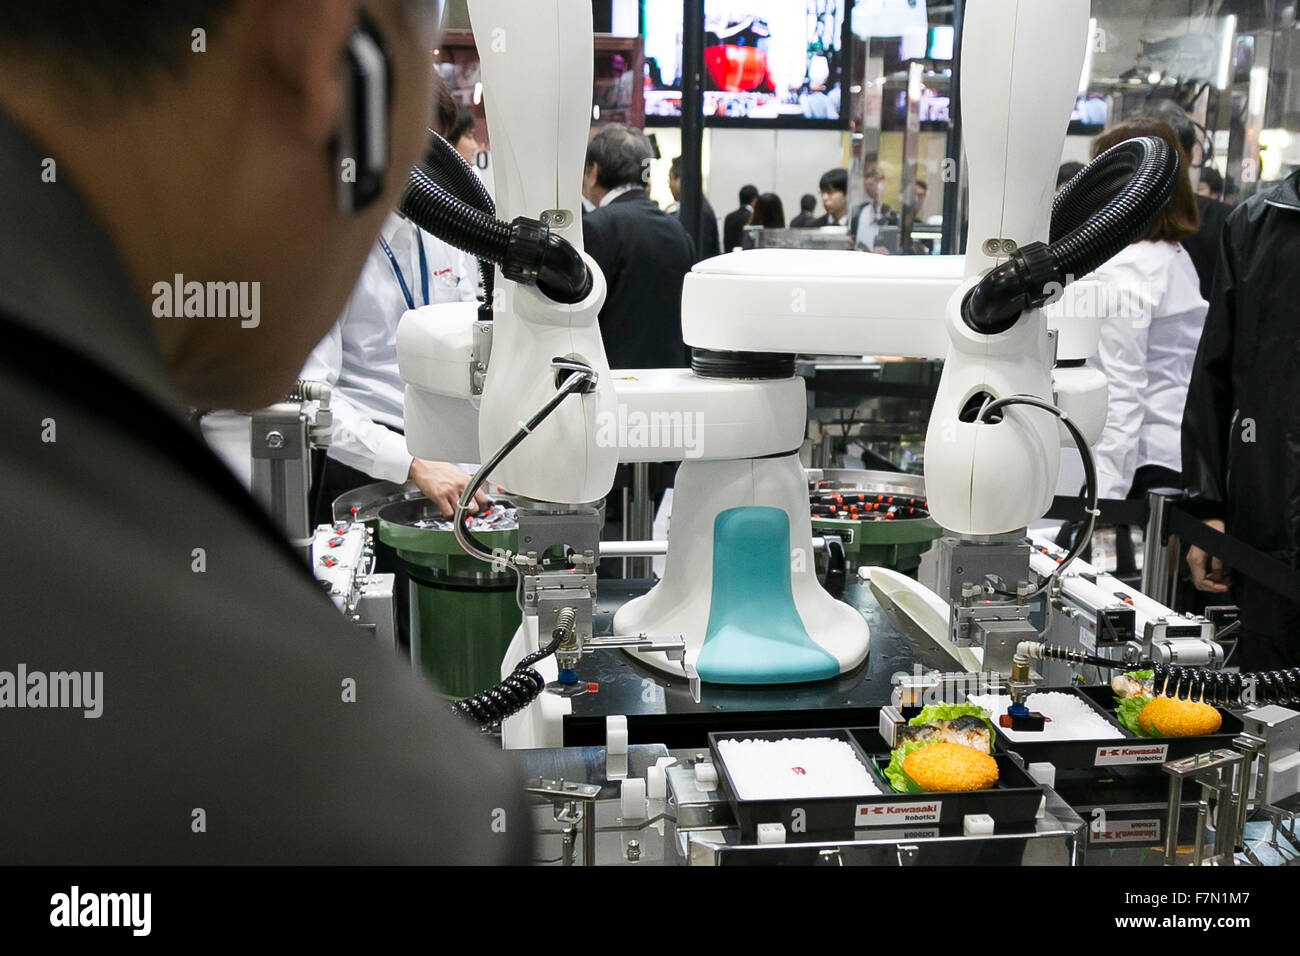 The dual-armed industrial robot duAro of Kawasaki Heavy Industries Ltd. performs at the International Robot Exhibition Stock Photo